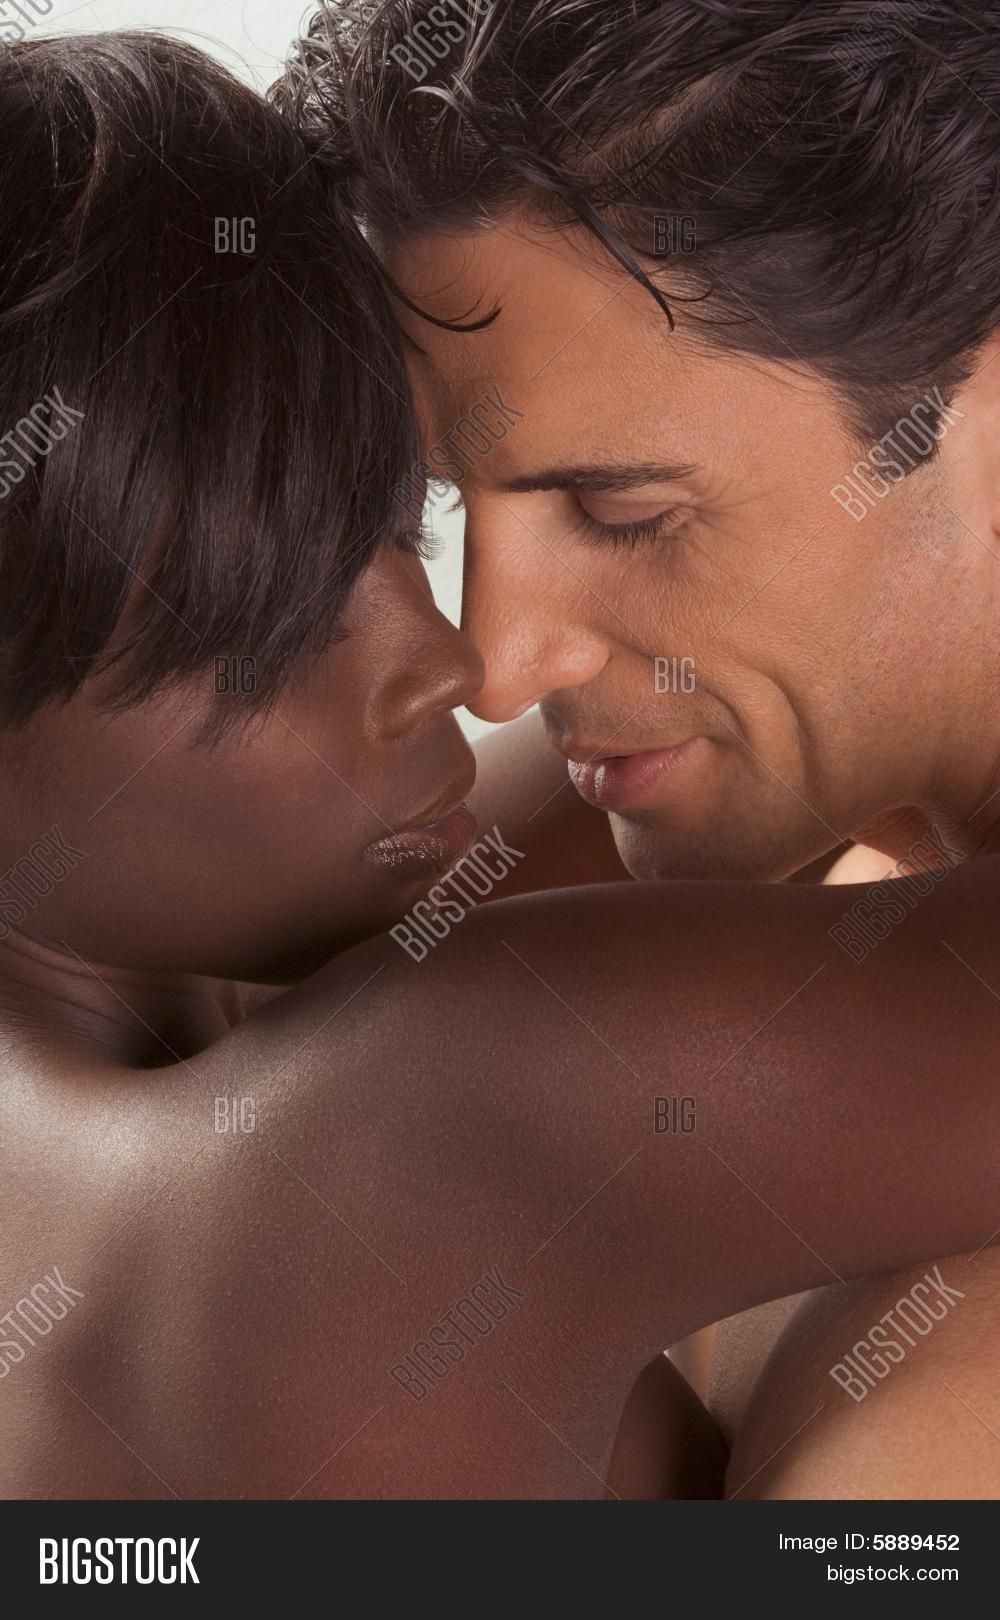 Are not beautiful couples kissing nude authoritative